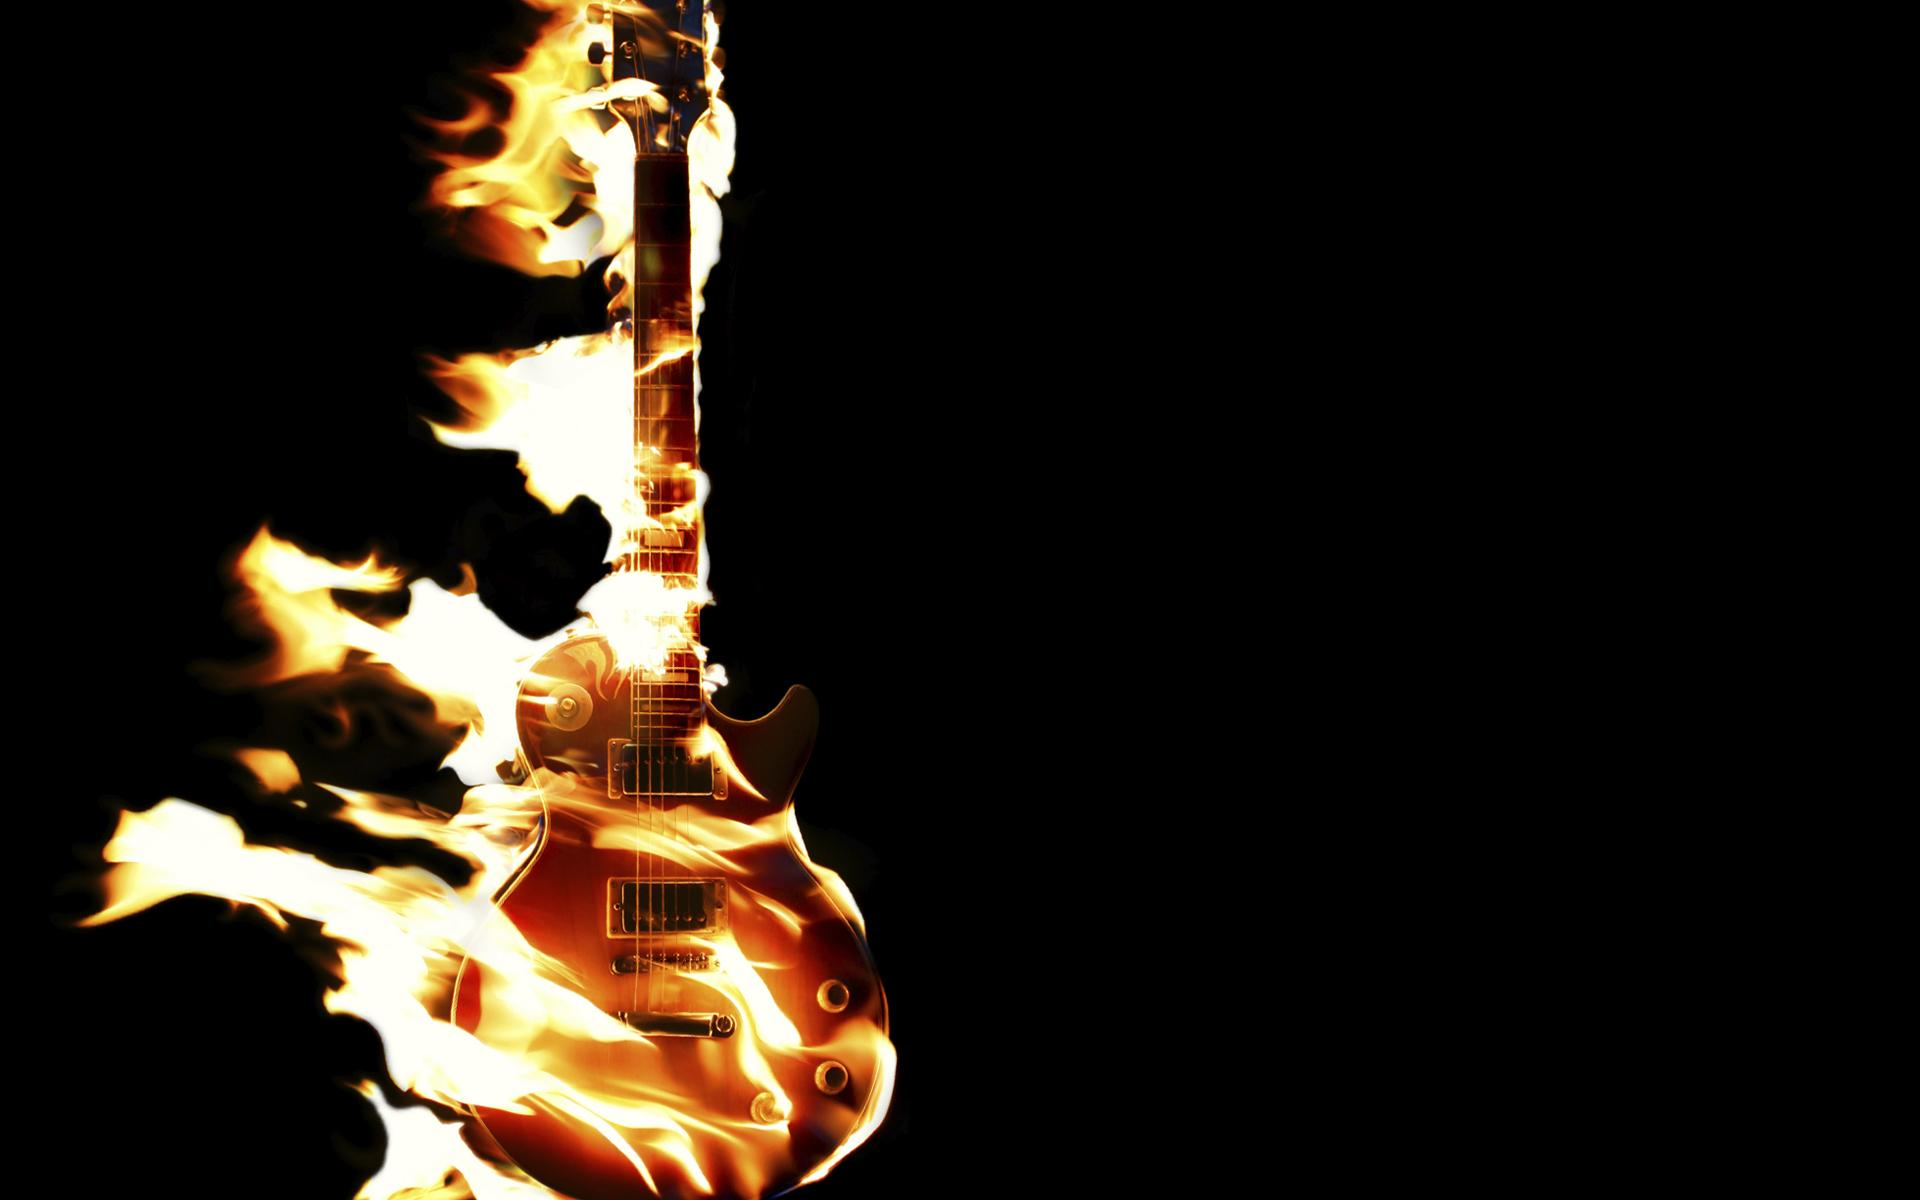 guitar babe wallpapers high resolution - wallpapersafari